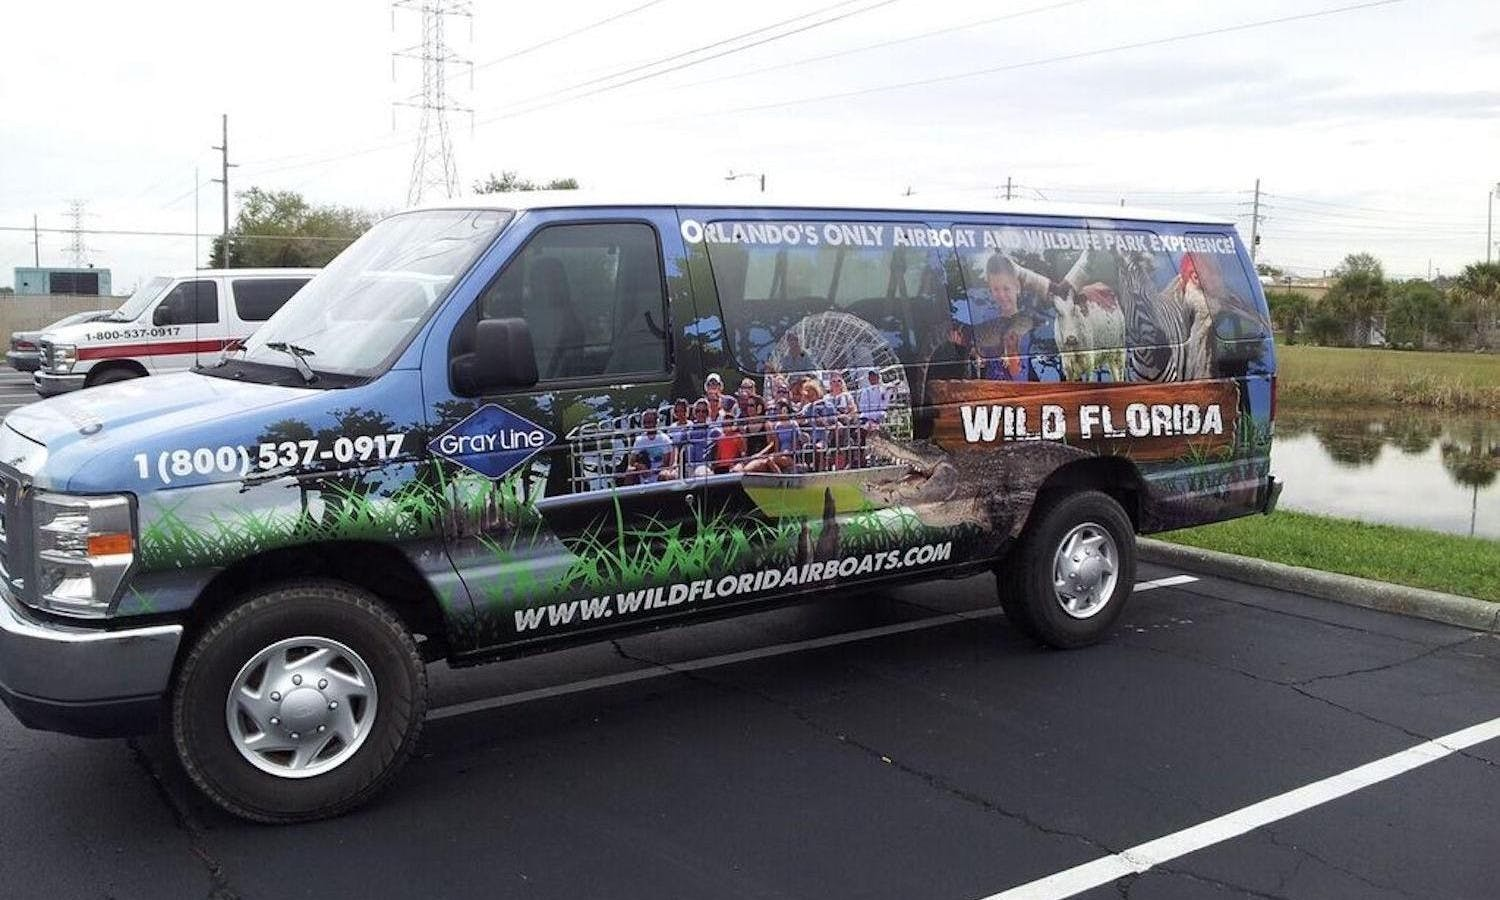 Wild Florida roundtrip transportation only